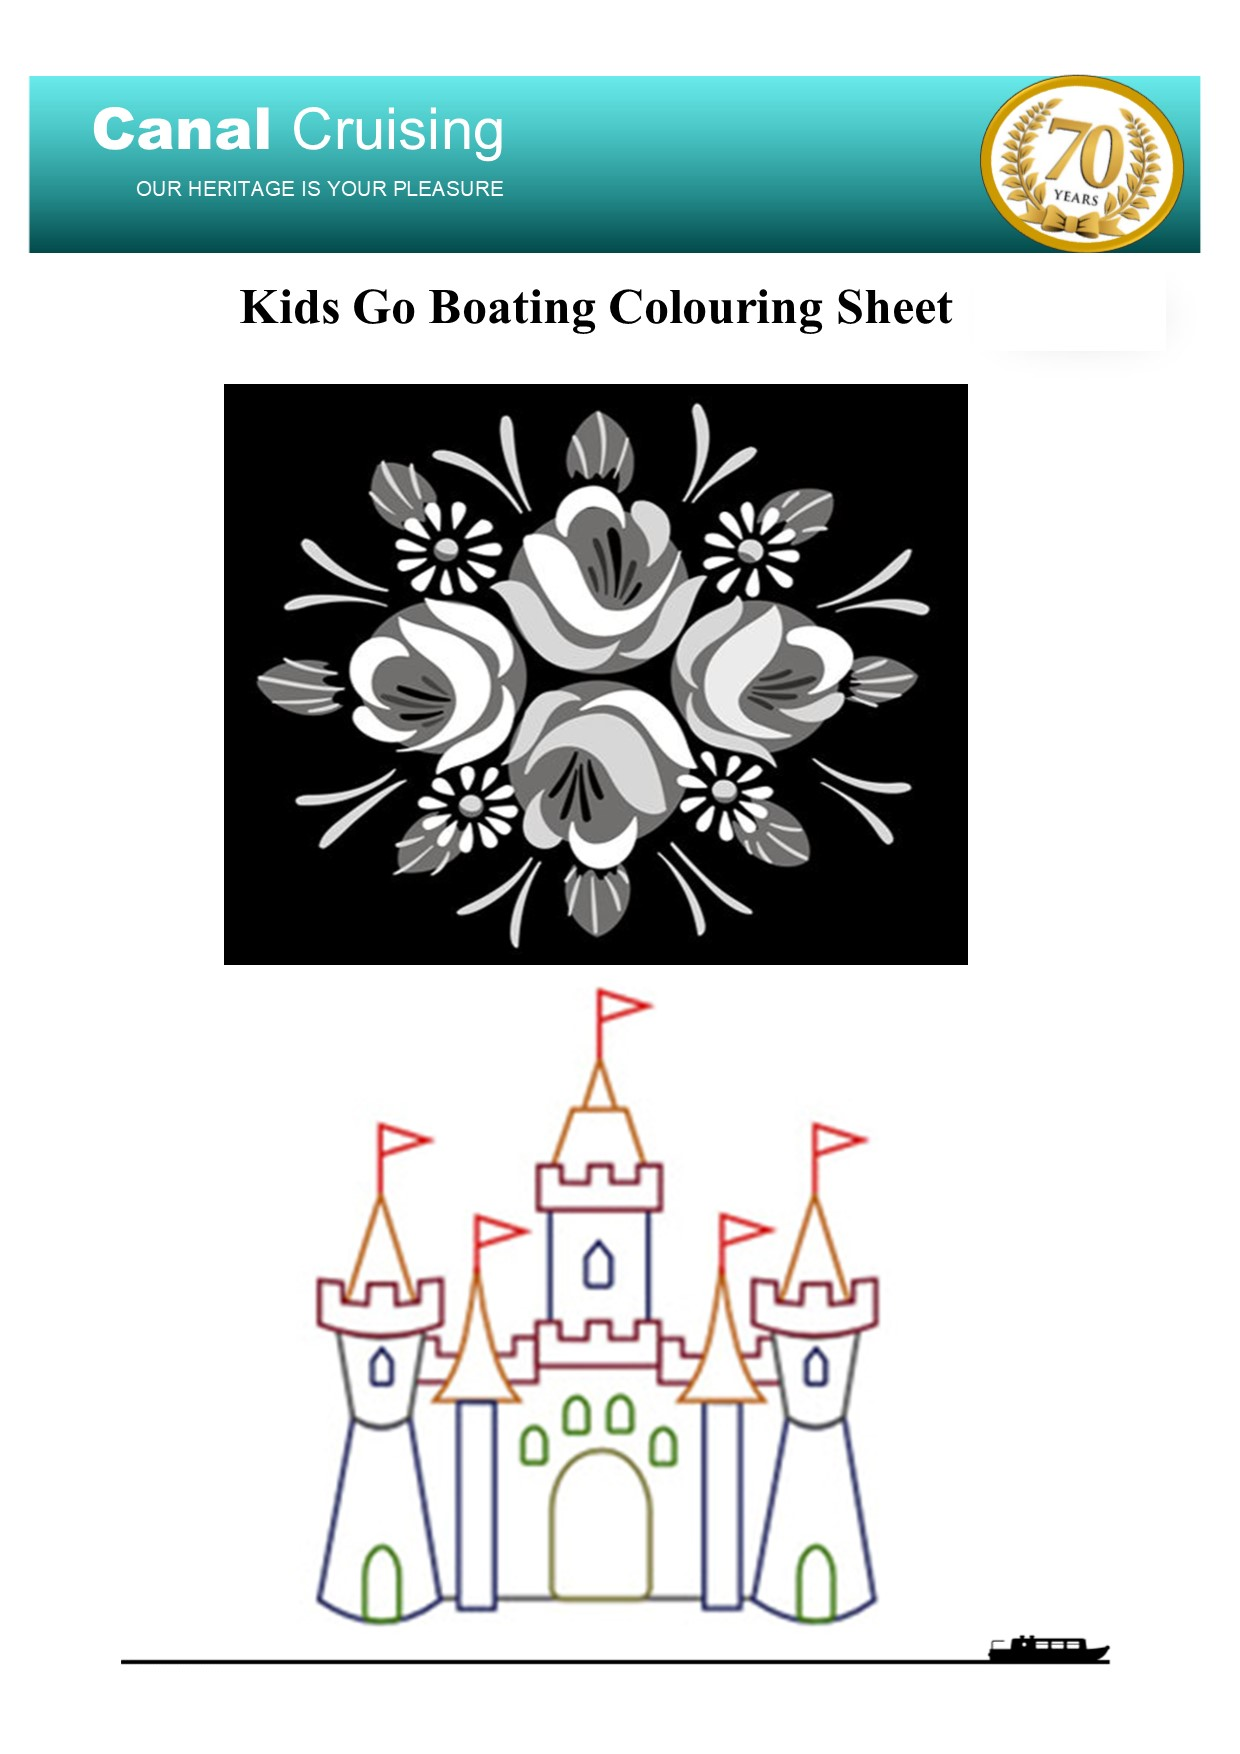 Kids go boating colouring sheet